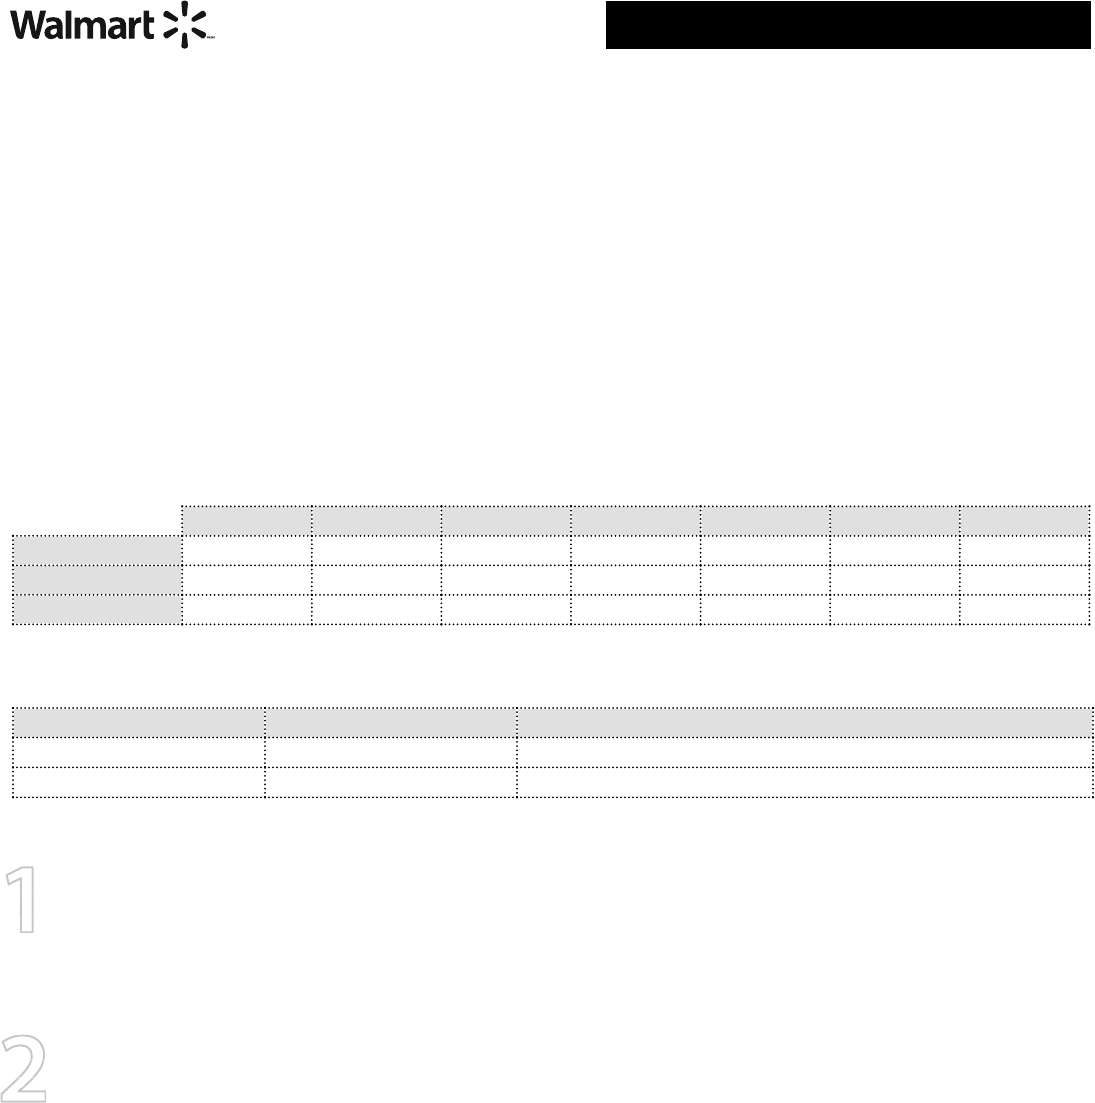 image about Walmart Printable Applications named Totally free Printable Walmart Task Software program Sort